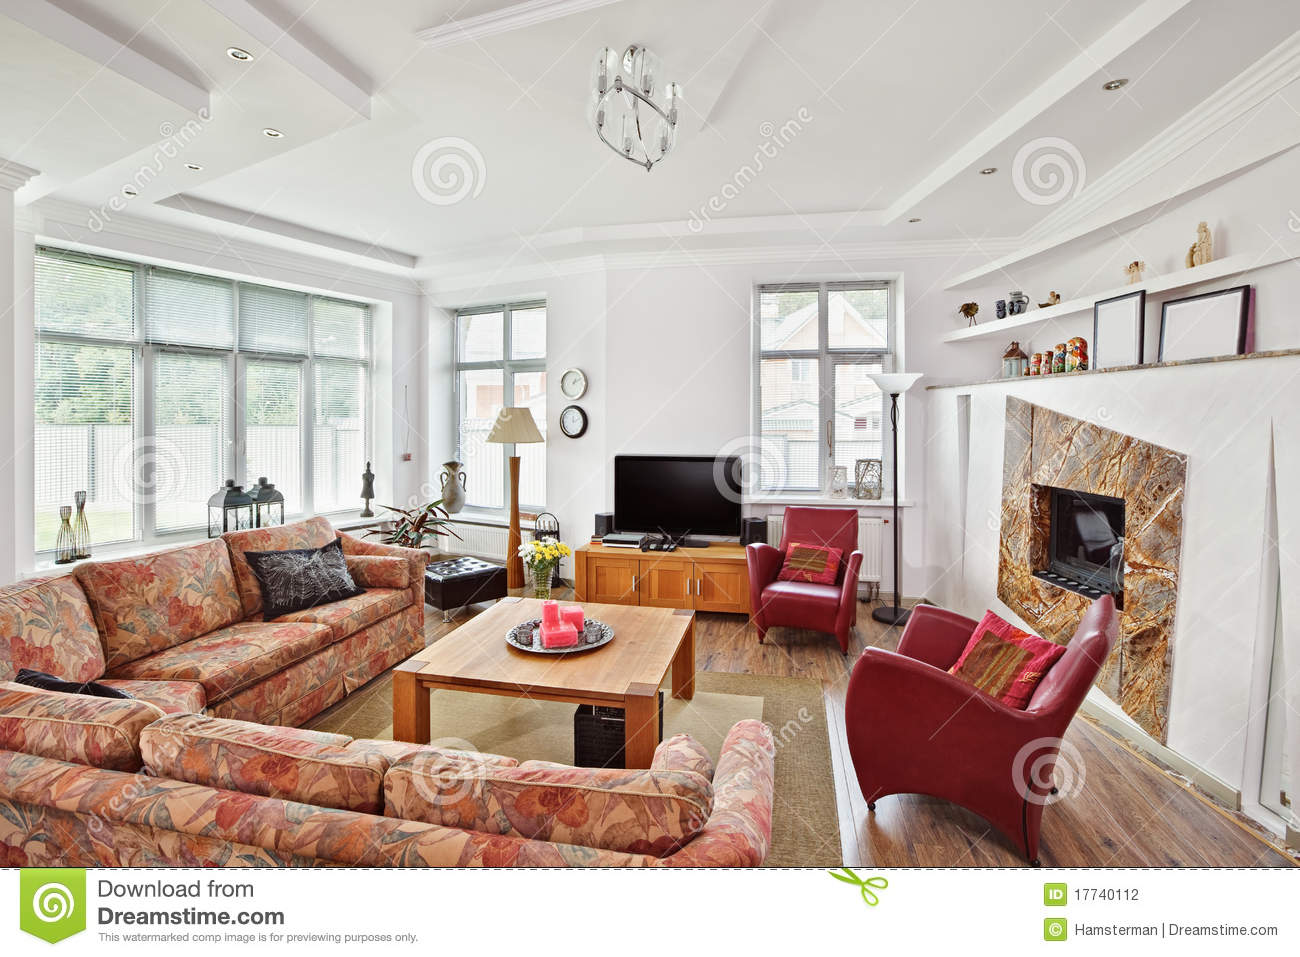 Modern art deco style drawing room interior stock photo - Decoration interieur salon moderne ...